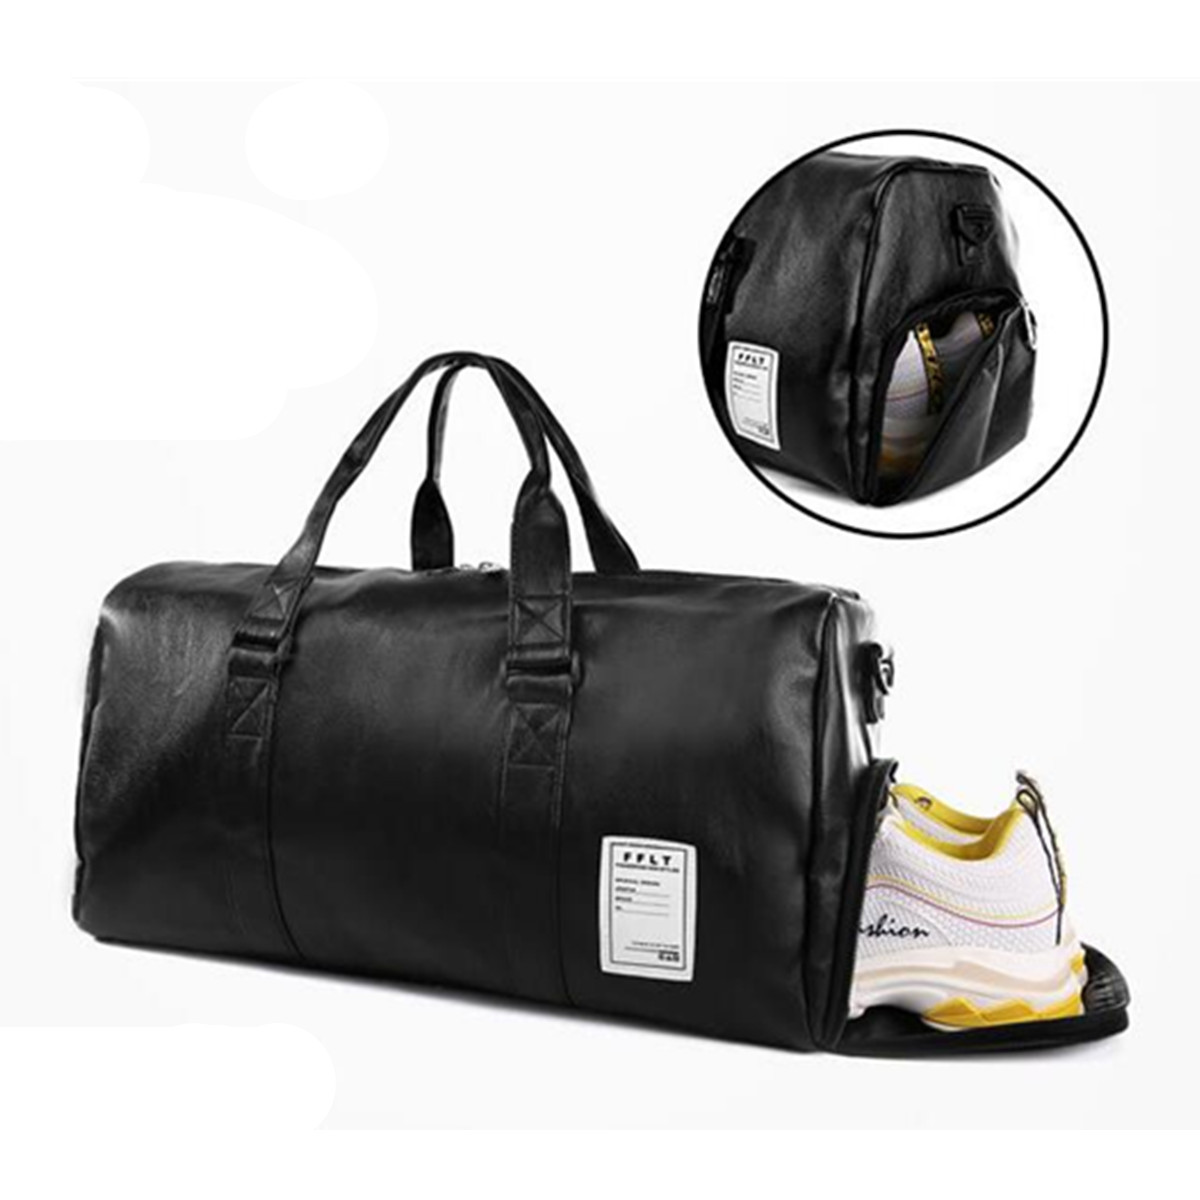 Pu Leather Gym Bag Top Female Sport Shoe Bag for Women Fitness Yoga Sport Bag Shoulder Bag Travel Handbags Luggage Small Large Shoe Bags